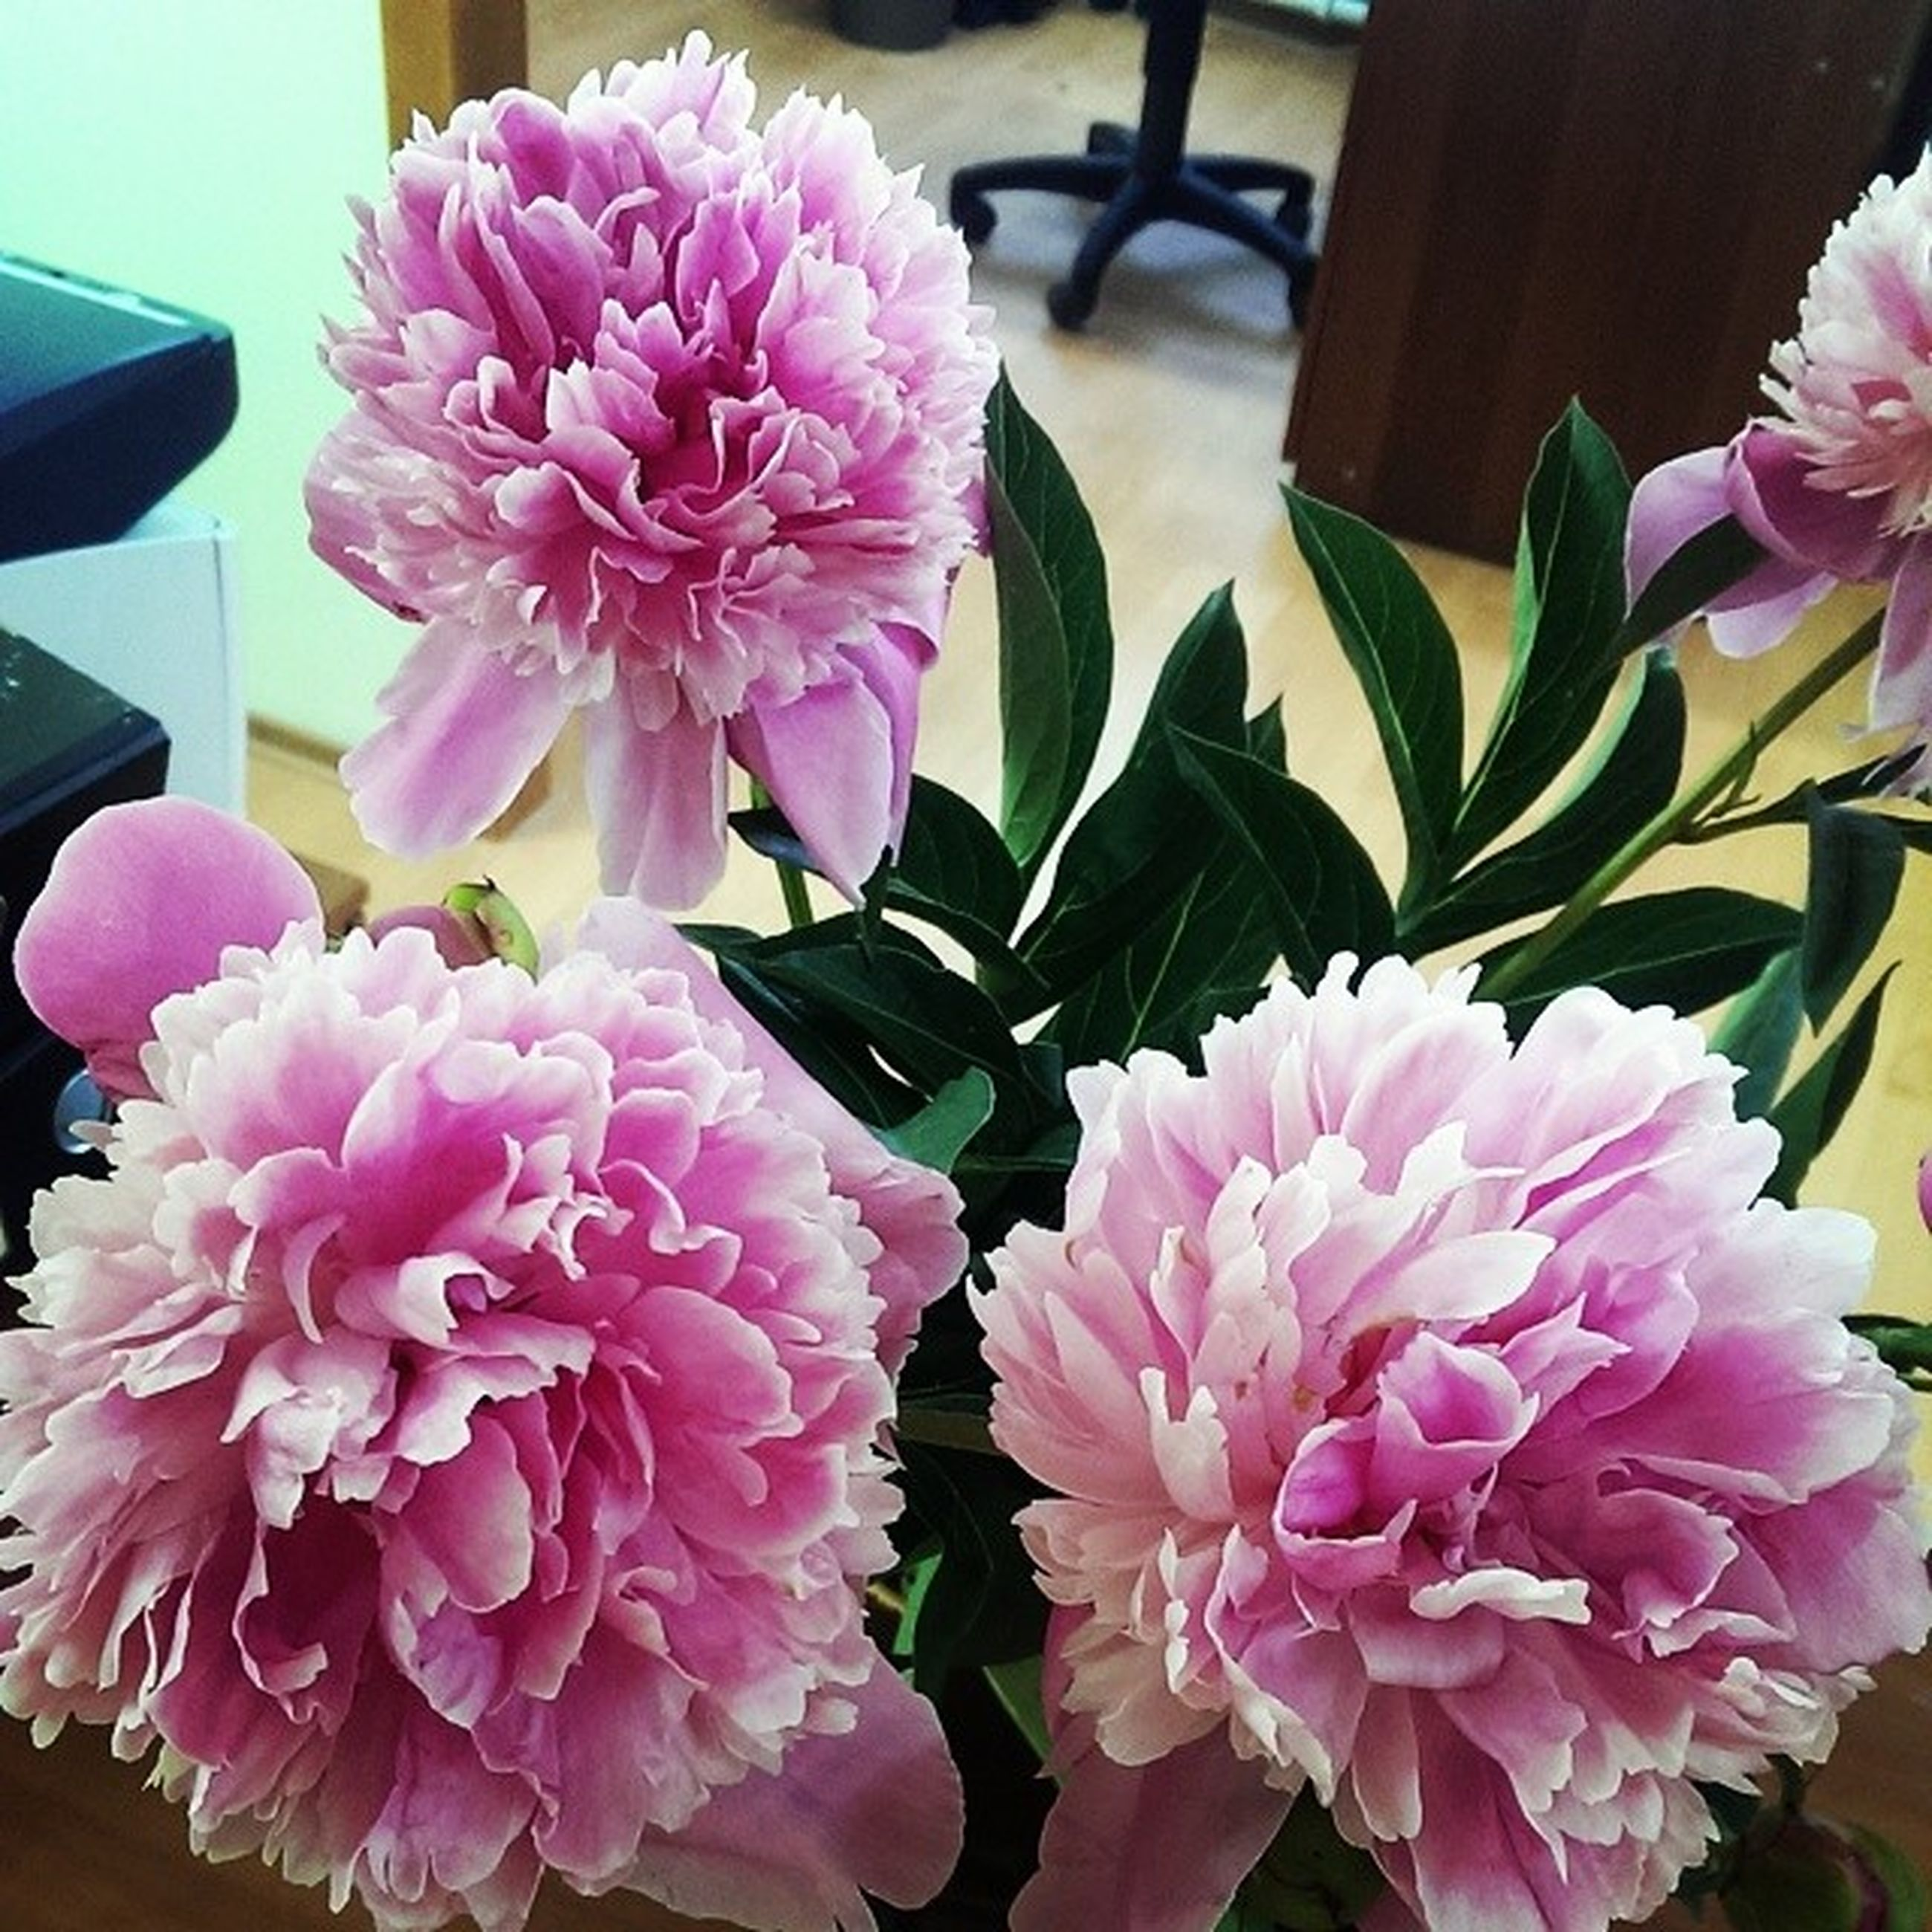 flower, freshness, pink color, petal, fragility, flower head, beauty in nature, indoors, growth, close-up, nature, pink, blooming, plant, bunch of flowers, high angle view, potted plant, focus on foreground, no people, flower arrangement